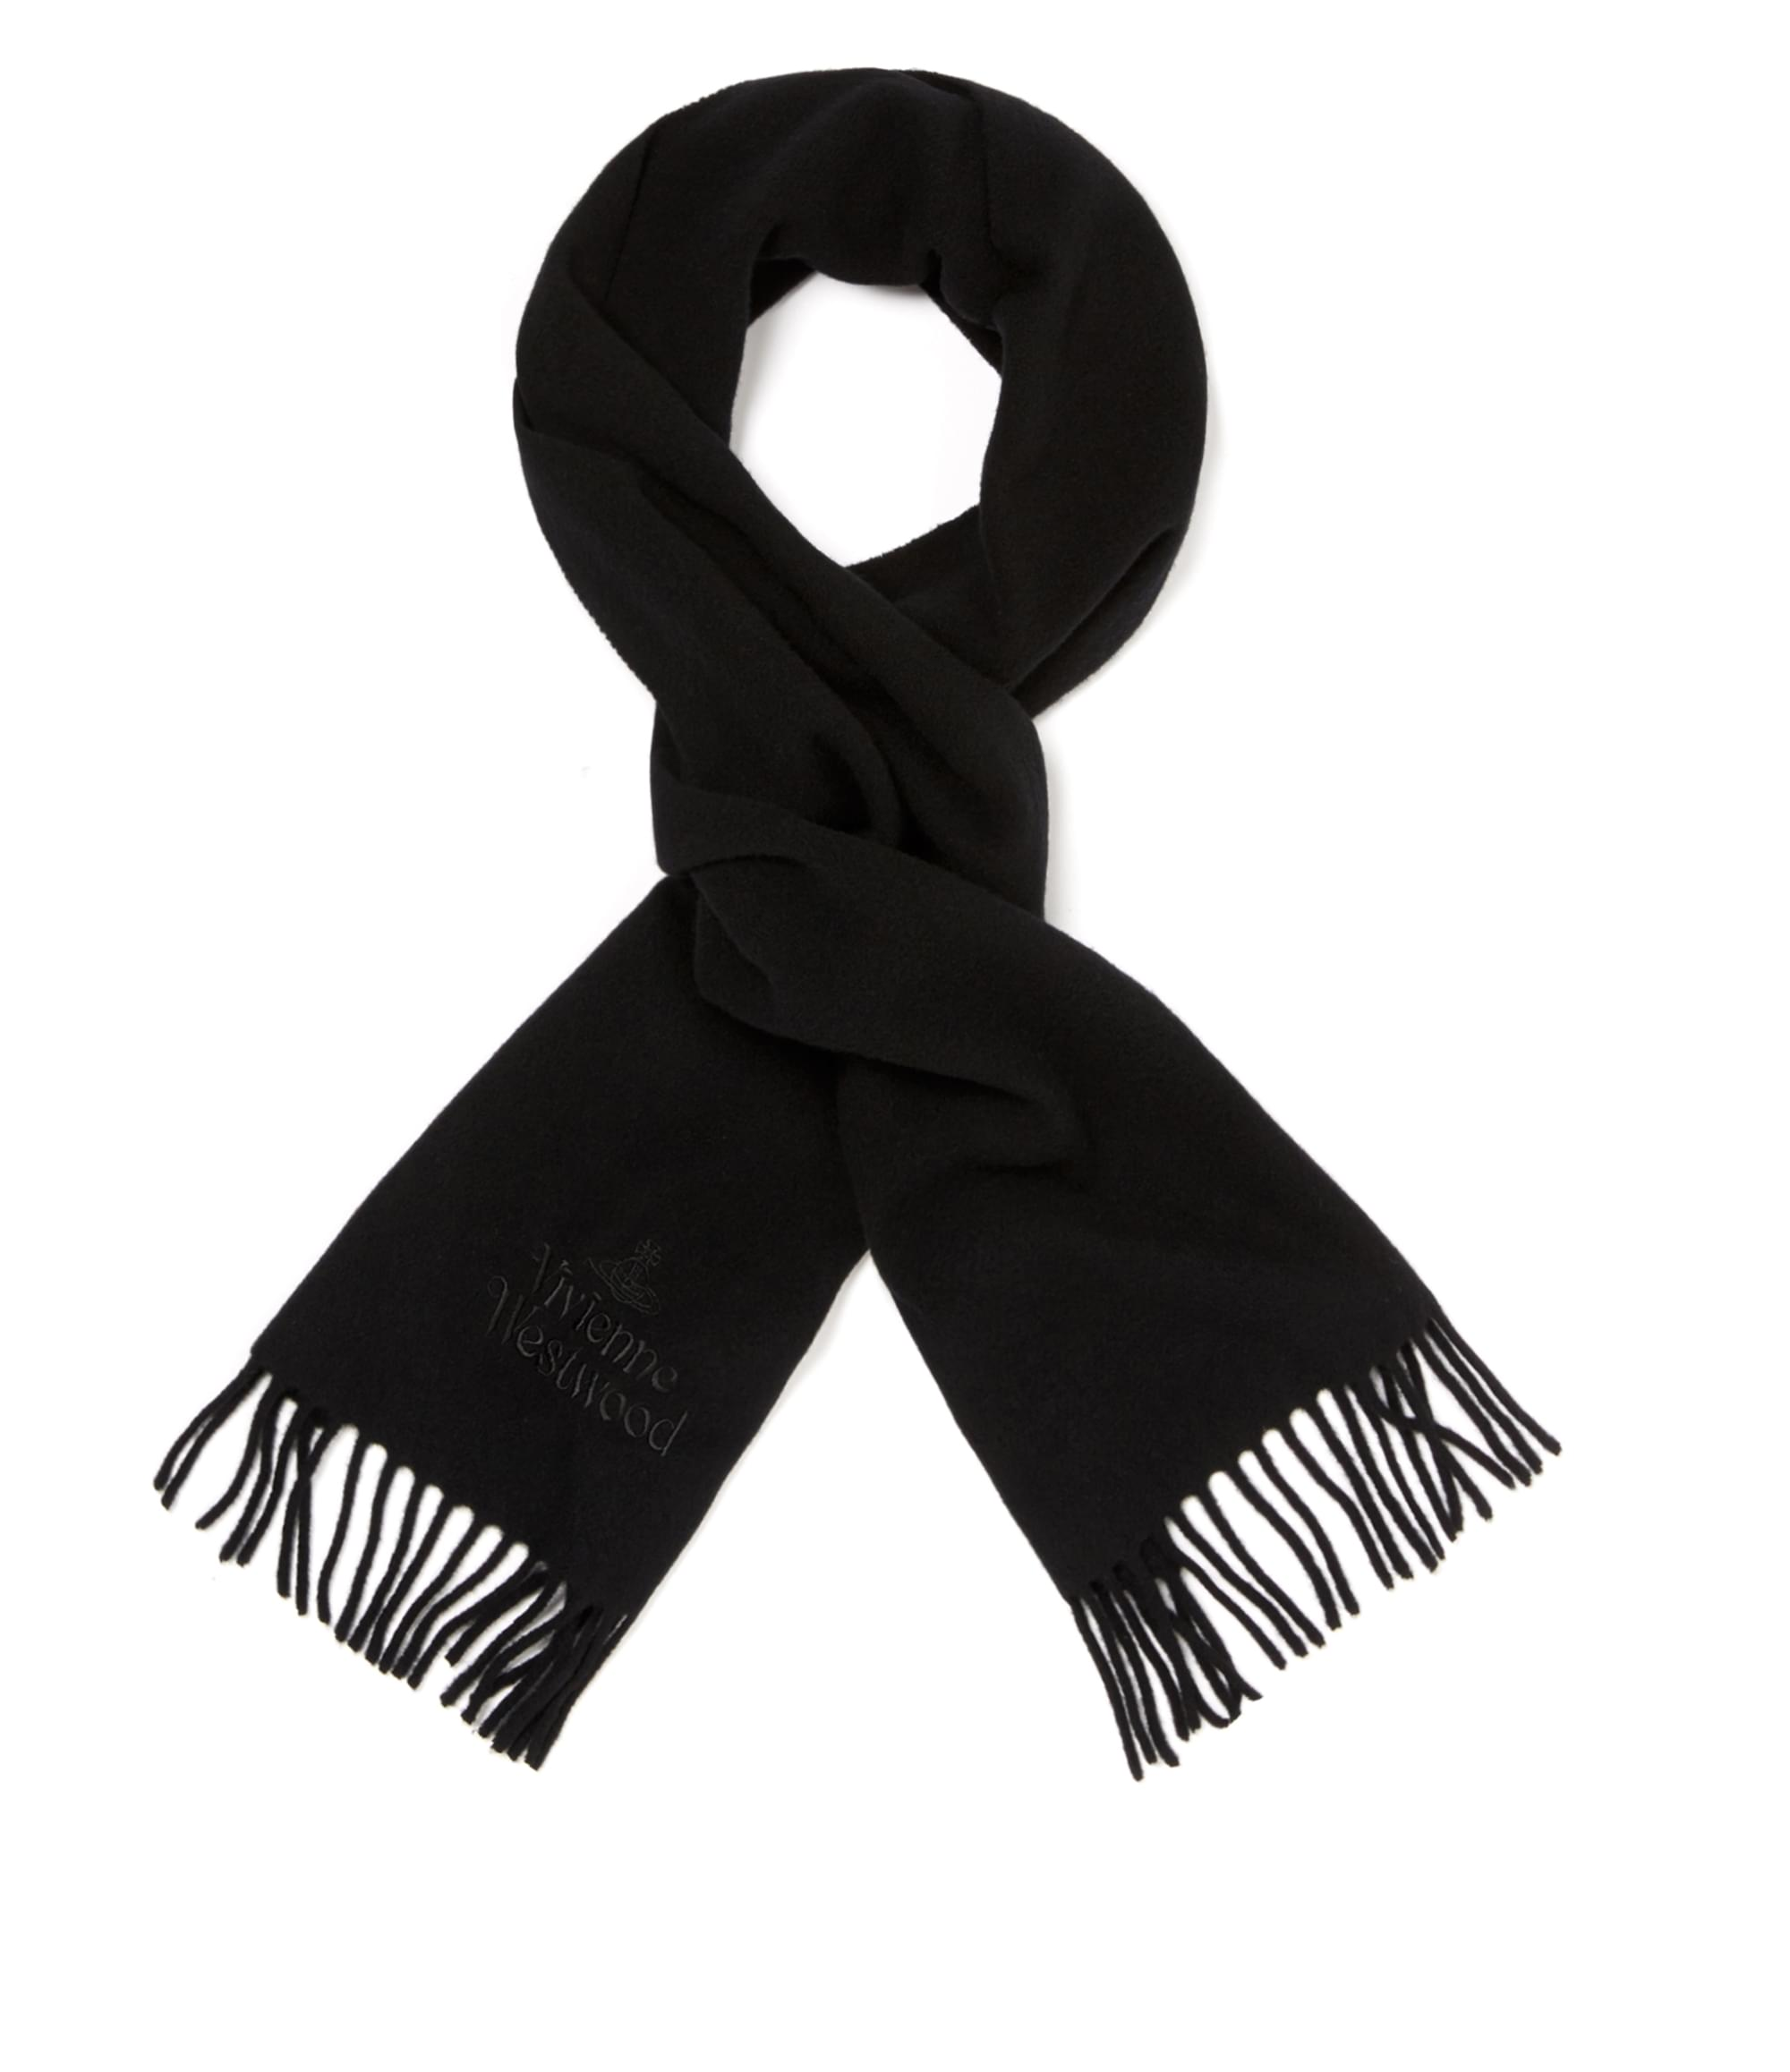 Vivienne Westwood Classic Embroidered Scarf Black